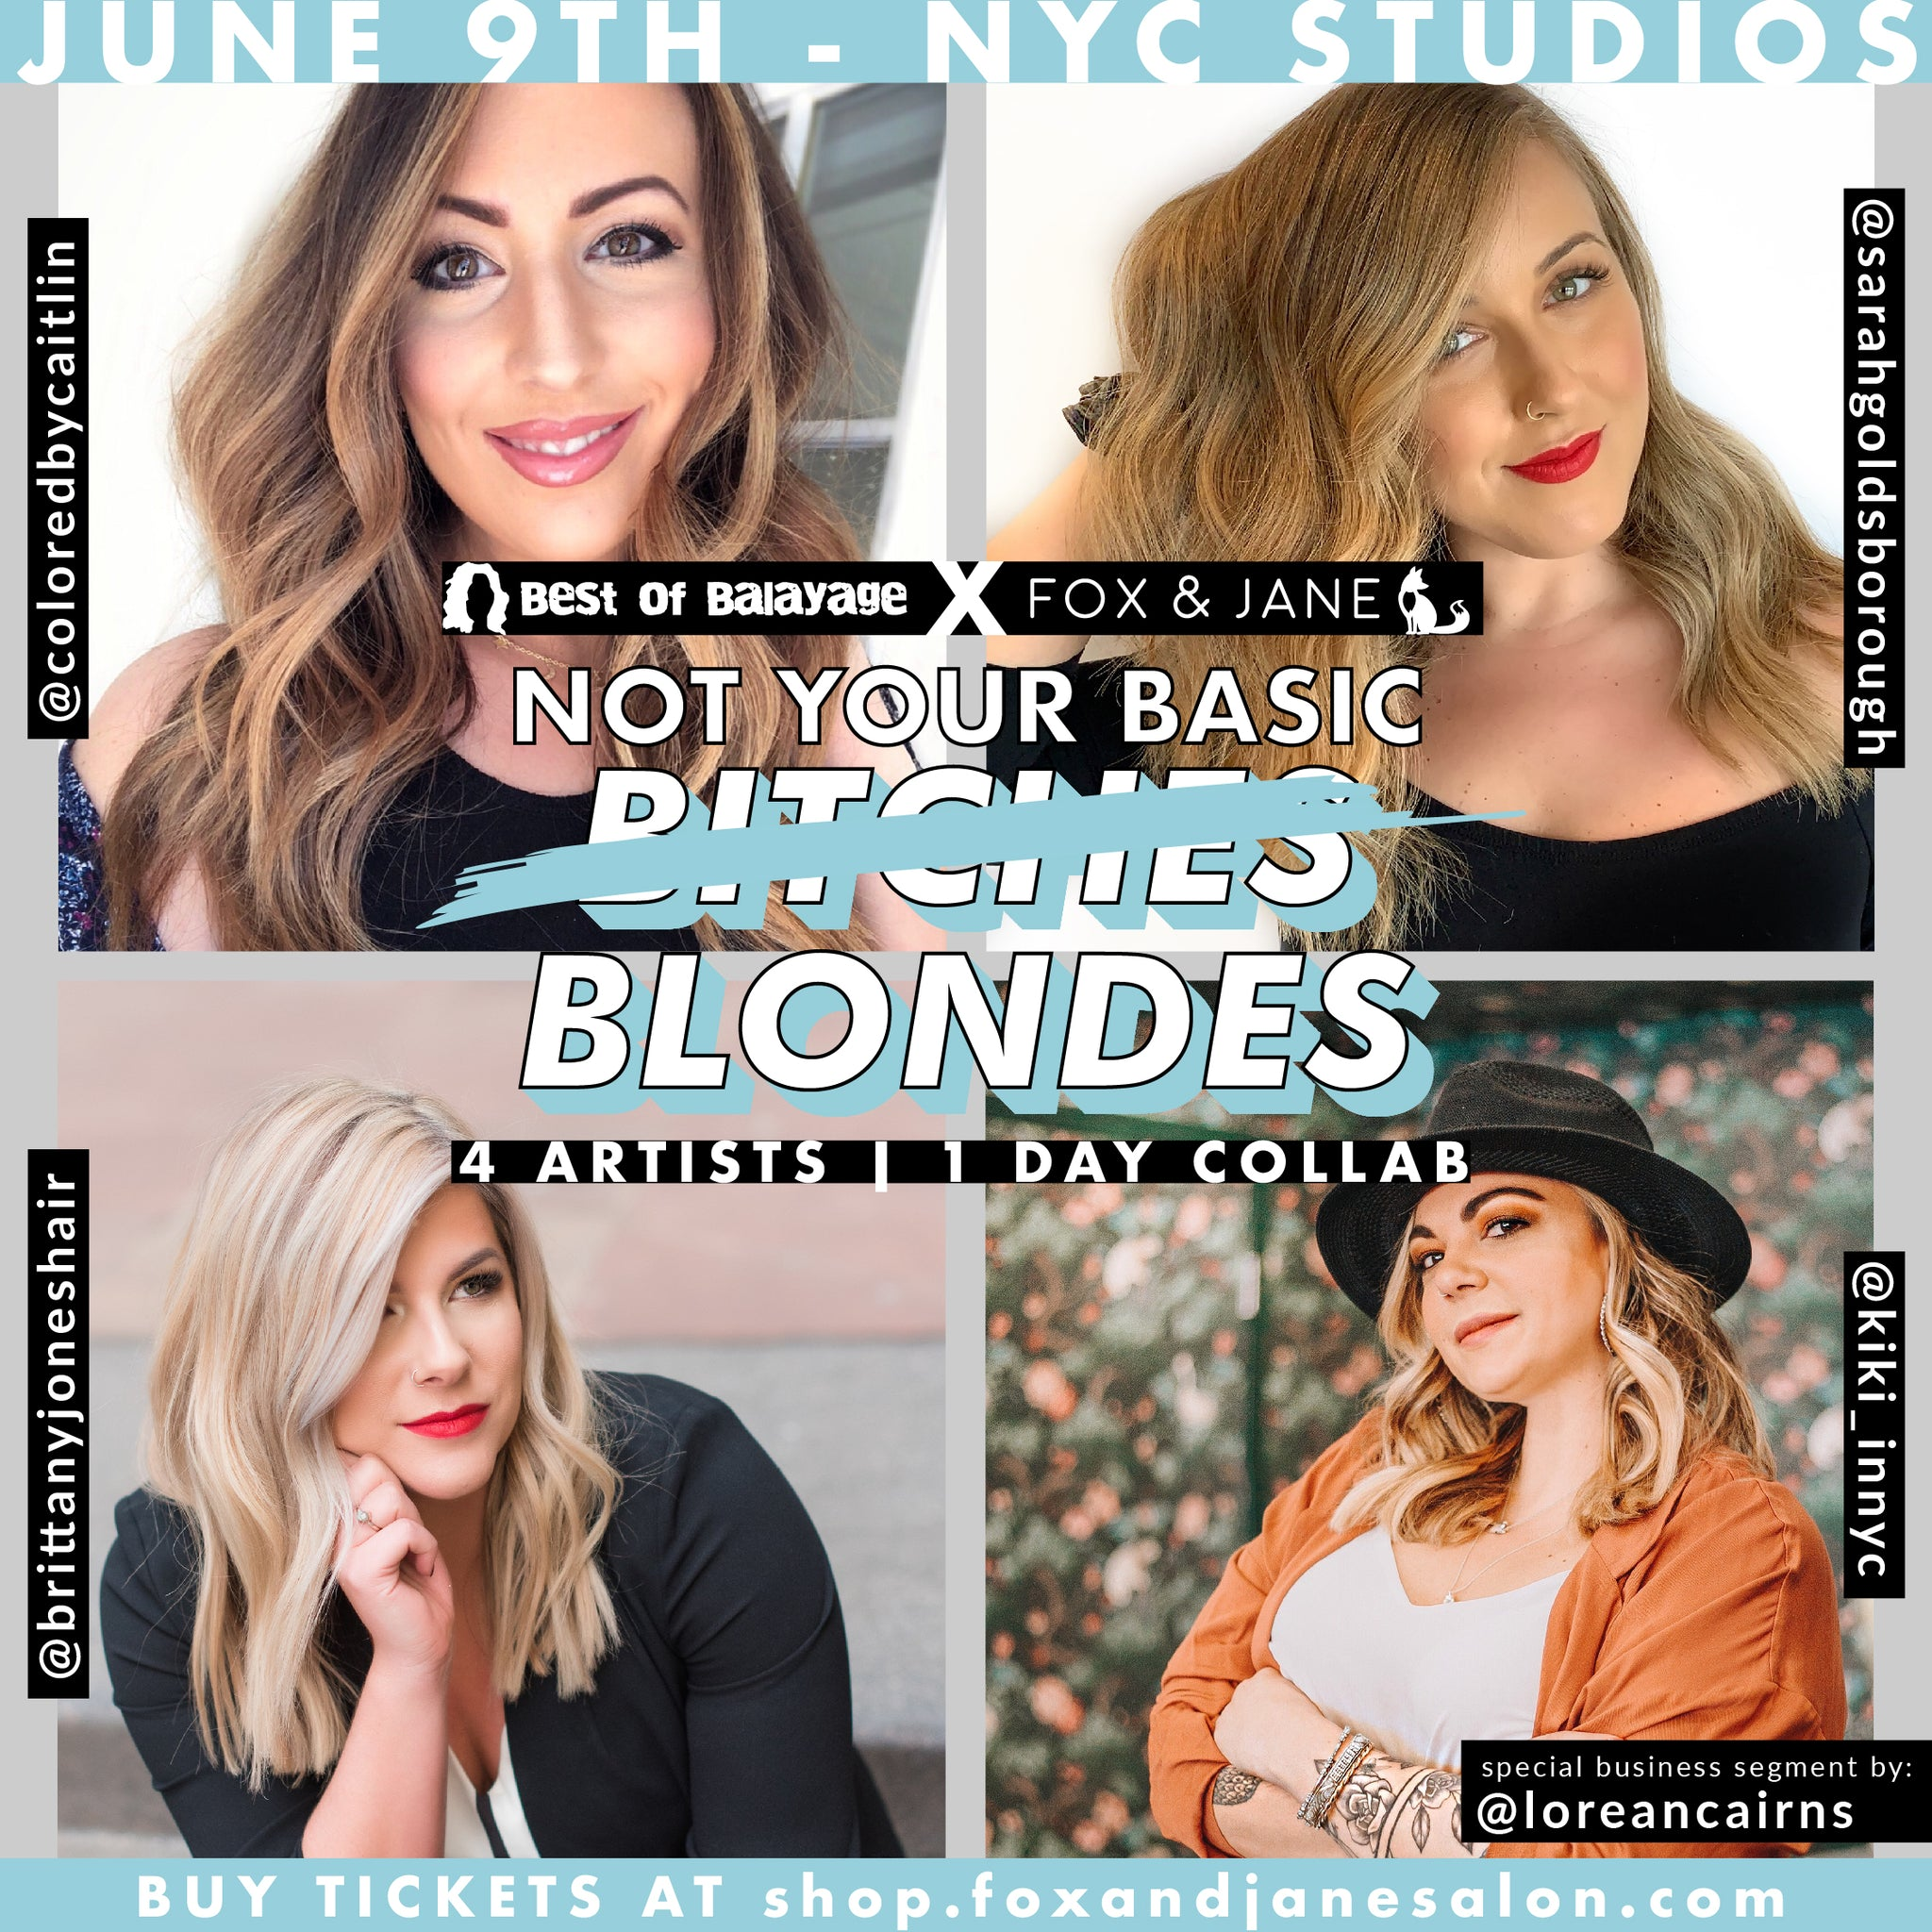 June 9th: NOT YOUR BASIC BLONDES